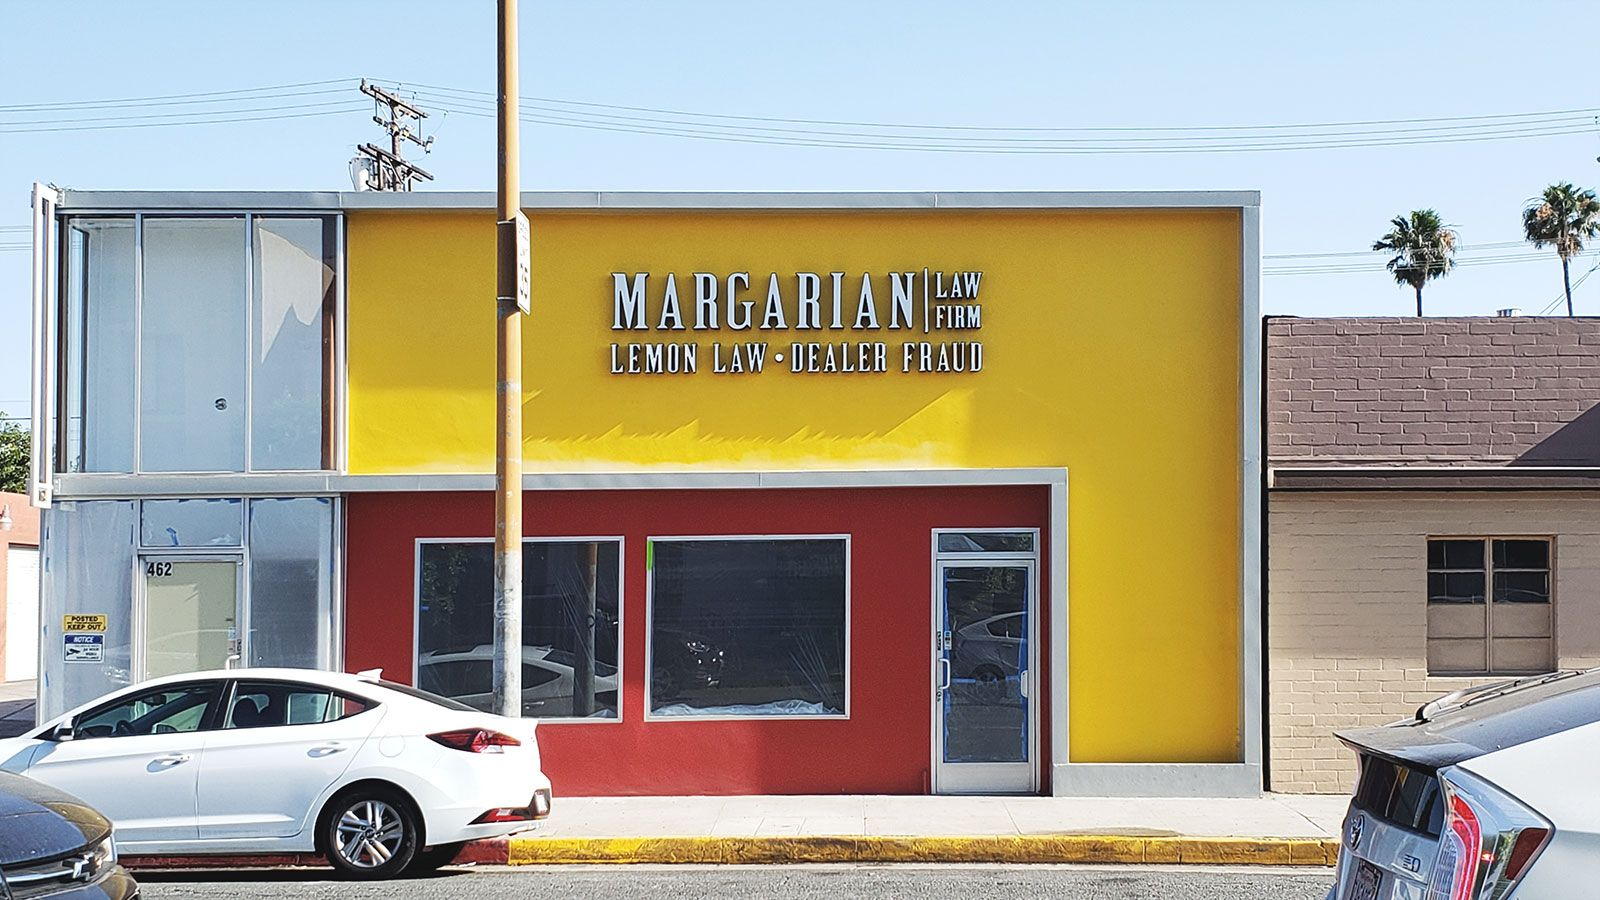 margarian law firm building sign